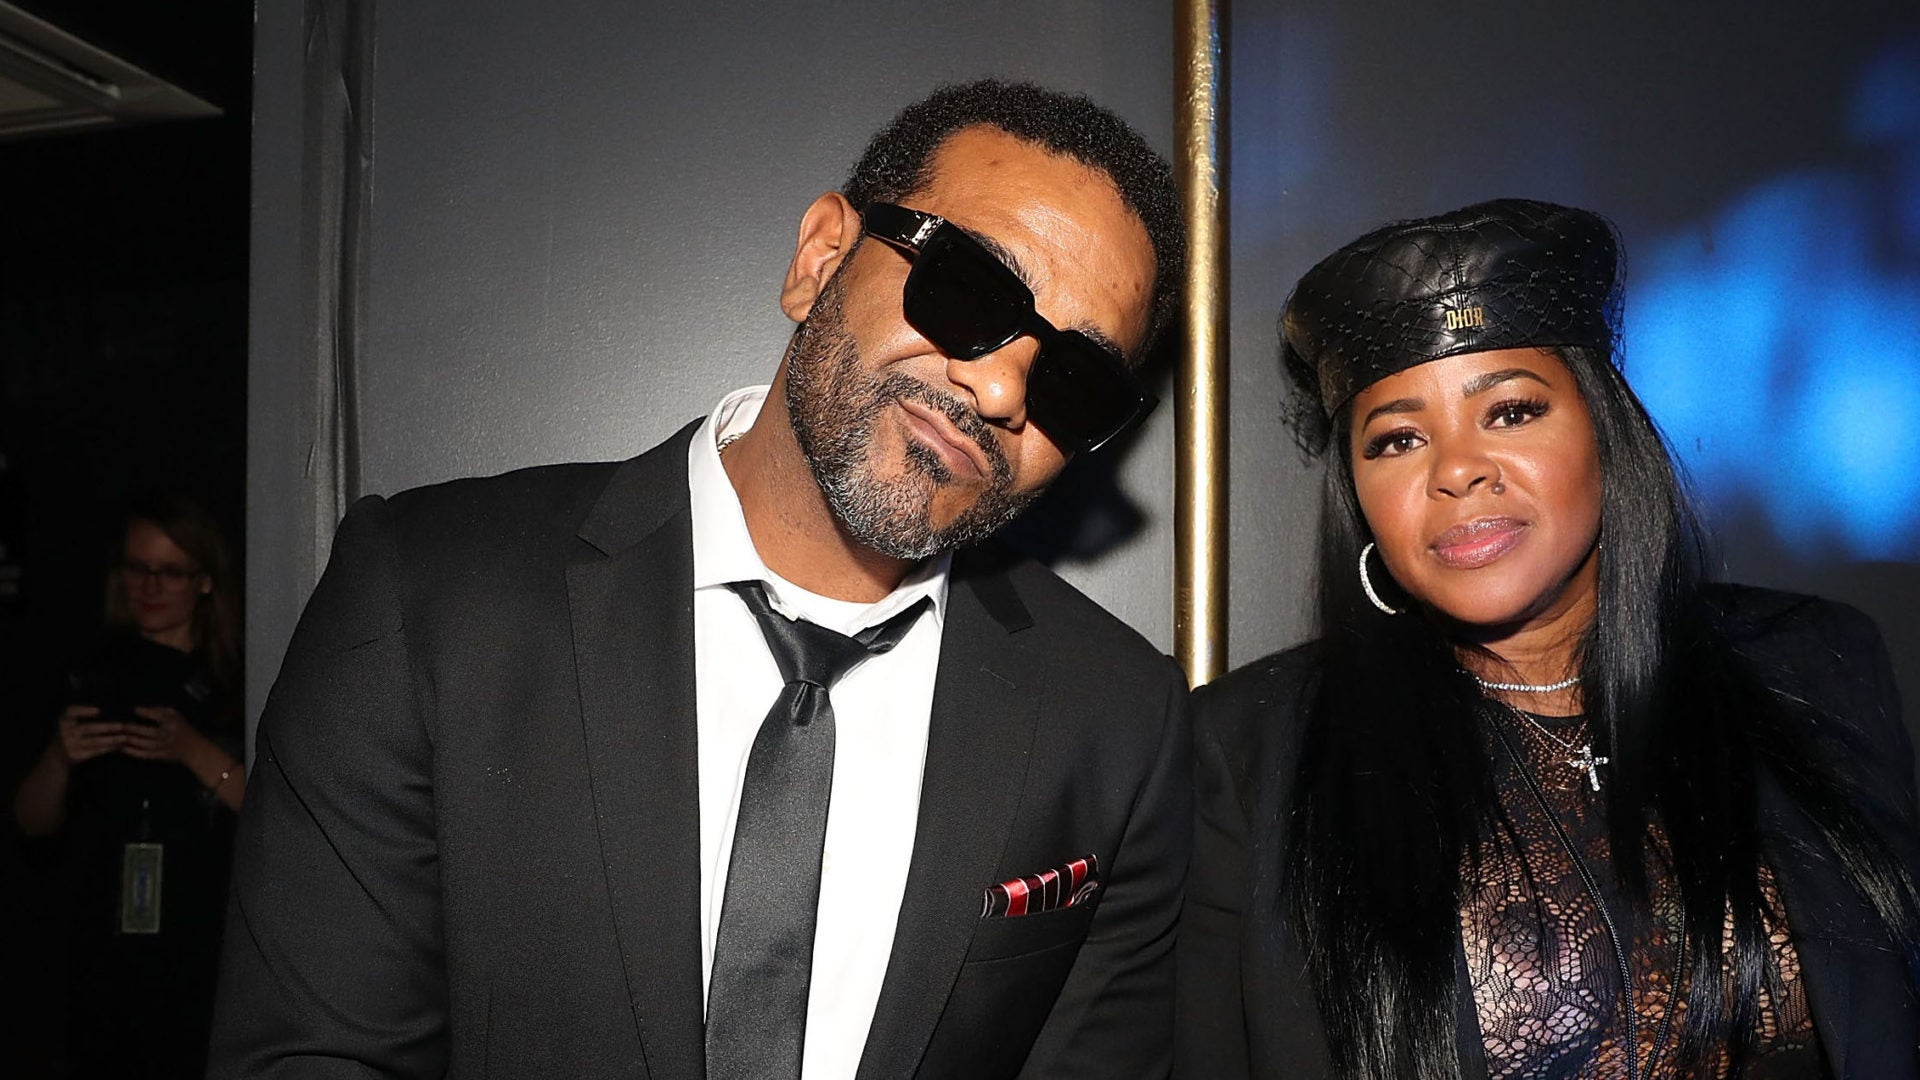 Chrissy Lampkin Says Marrying Jim Jones Is 'Not A Priority Anymore'